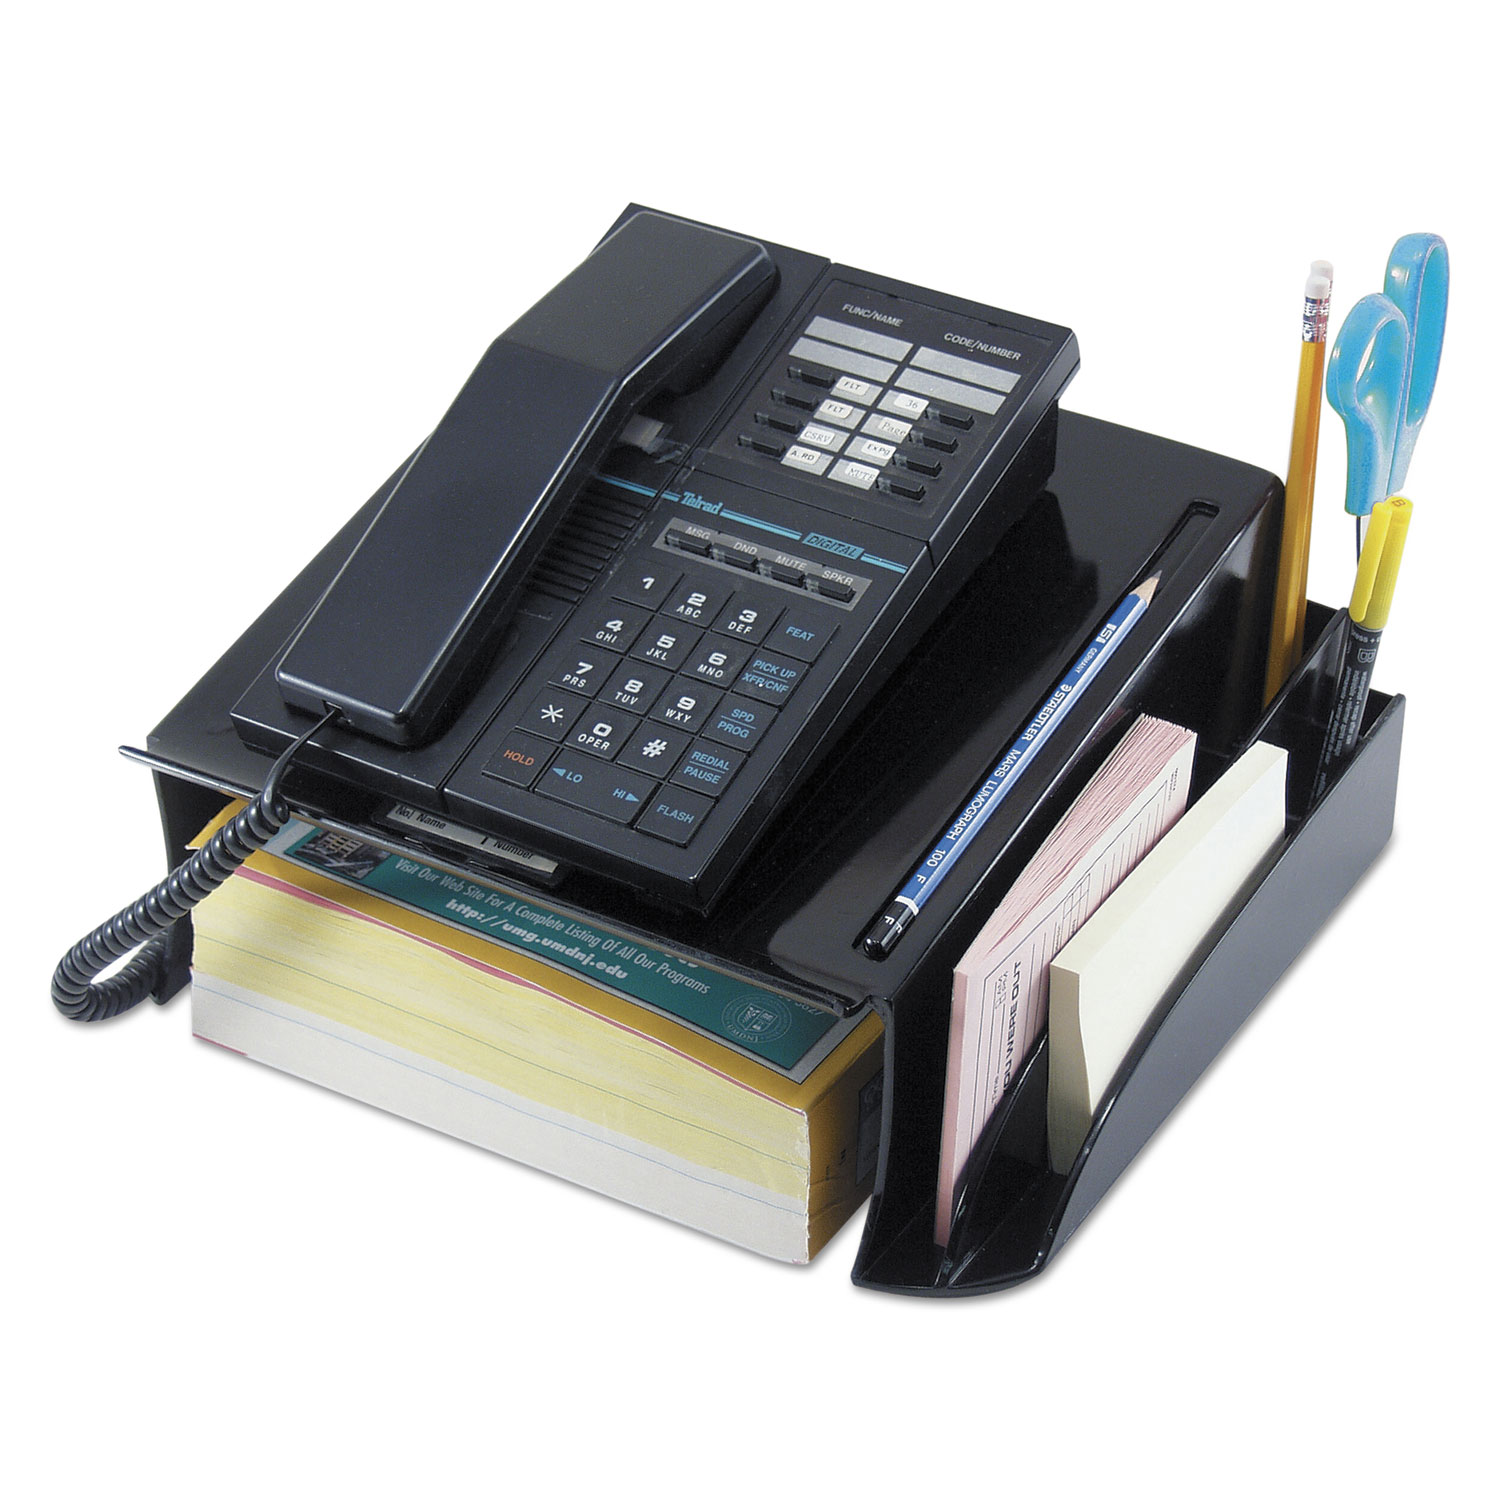 Telephone Stand and Message Center, 12 1/4 x 10 1/2 x 5 1/4, Black